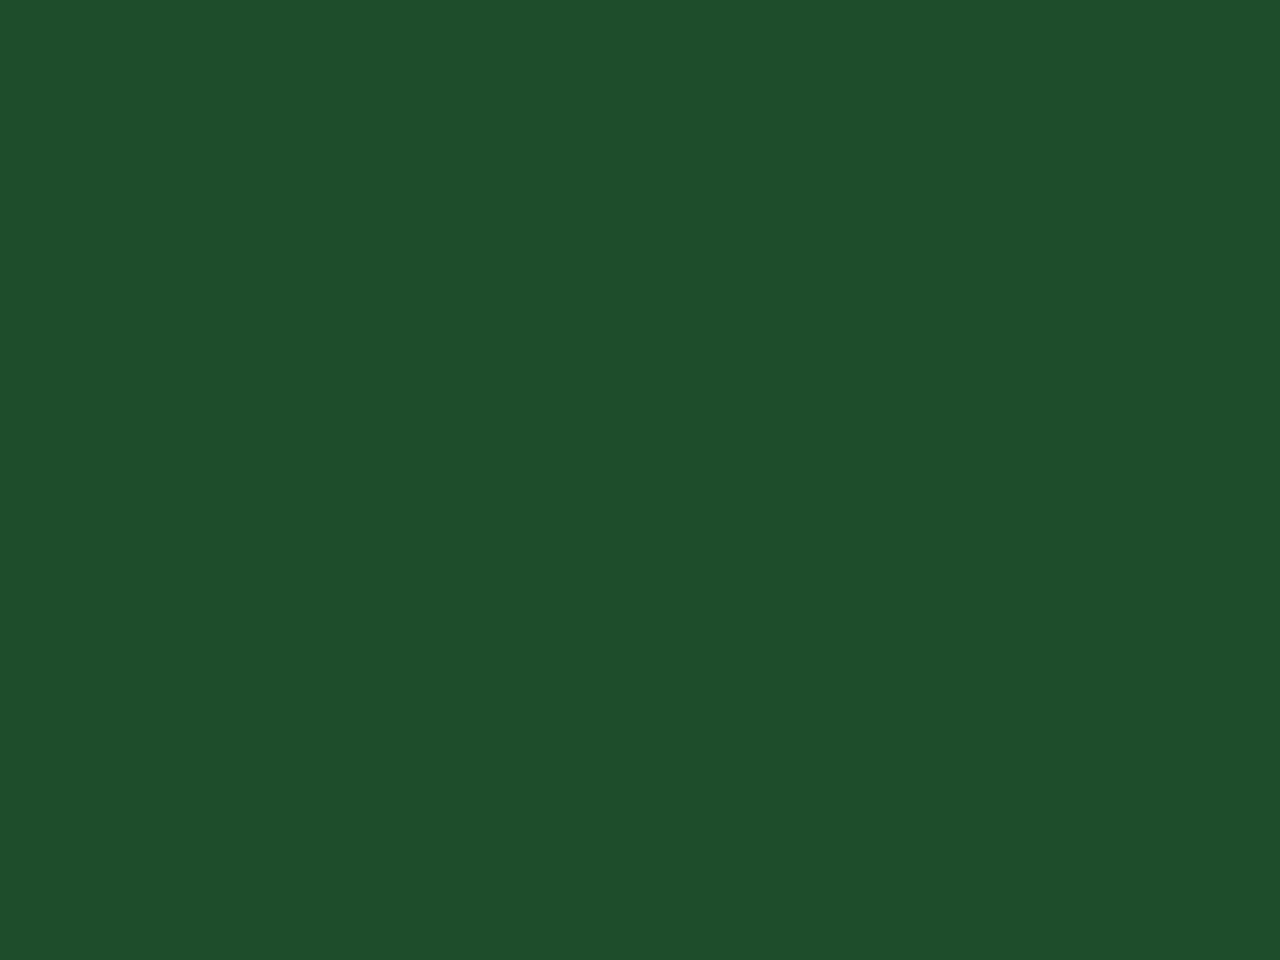 1280x960 Cal Poly Green Solid Color Background